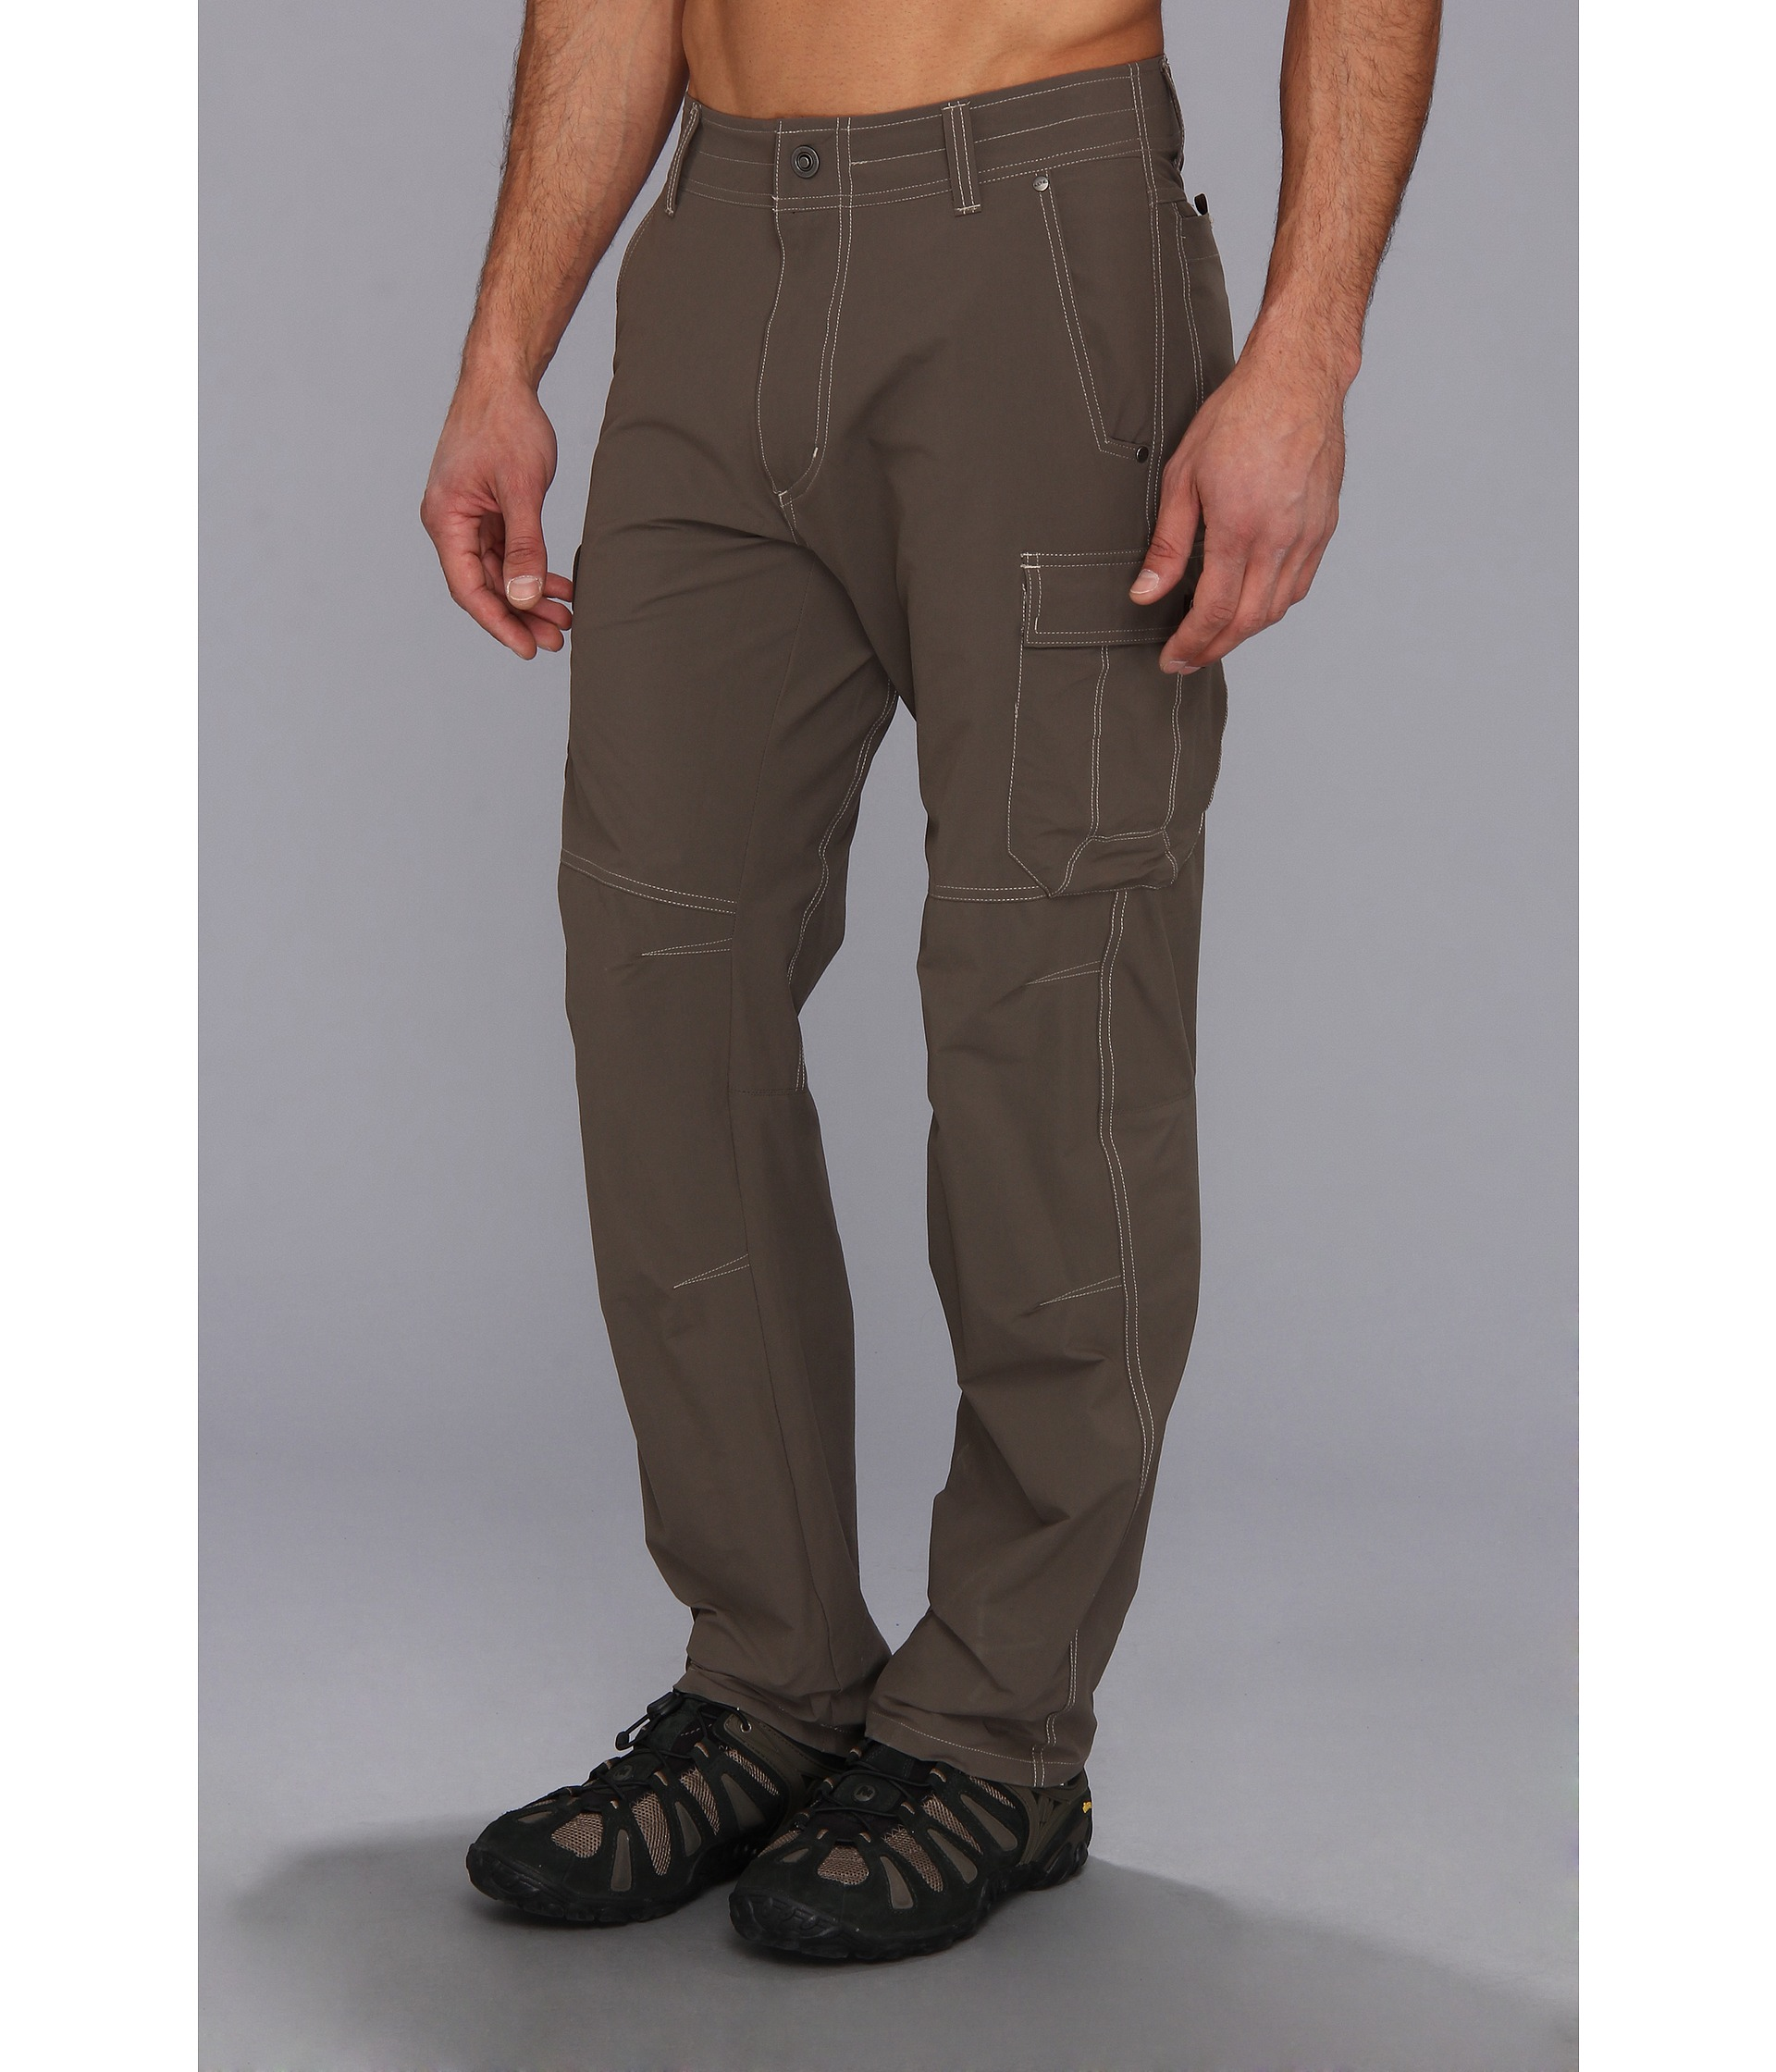 kuhl women s cargo pants photo - 1